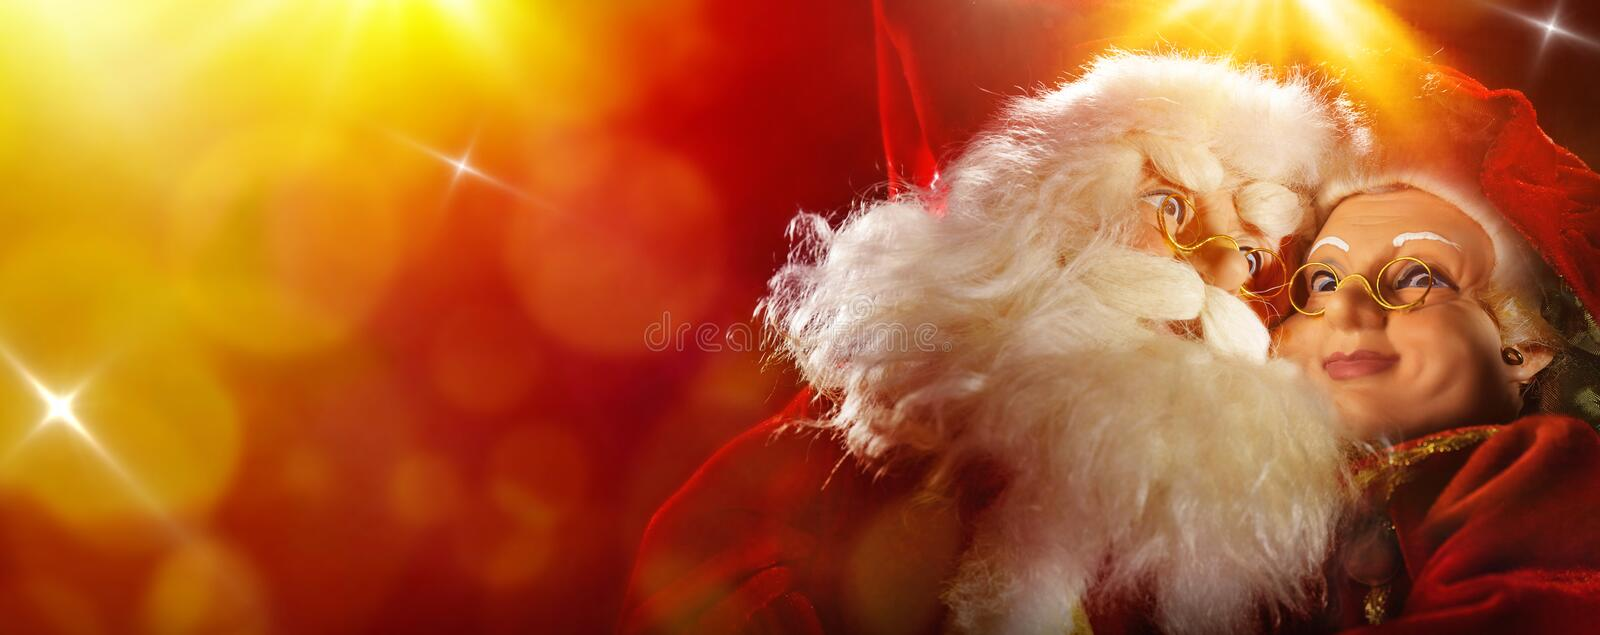 Santa Claus and Mrs Claus on red and yellow background. Santa Claus and Mrs. Claus clinging on red and yellow background with lights and shines royalty free stock images